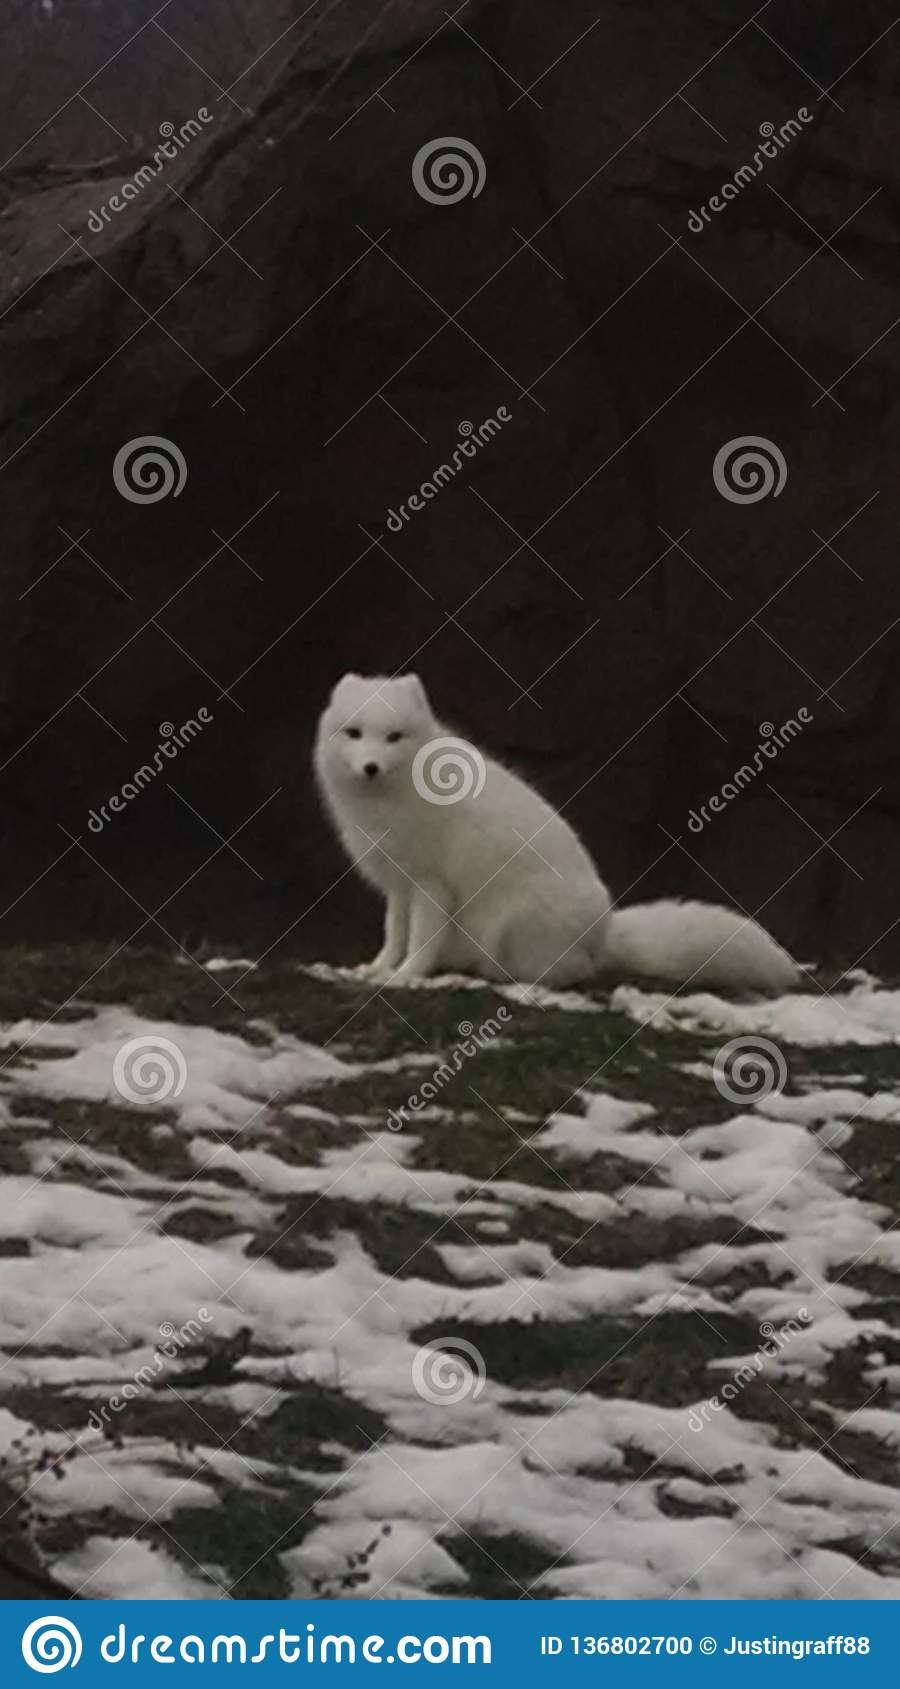 43d5b924375 Arctic fox with a white coat trying to blend into a partly snowy landscape